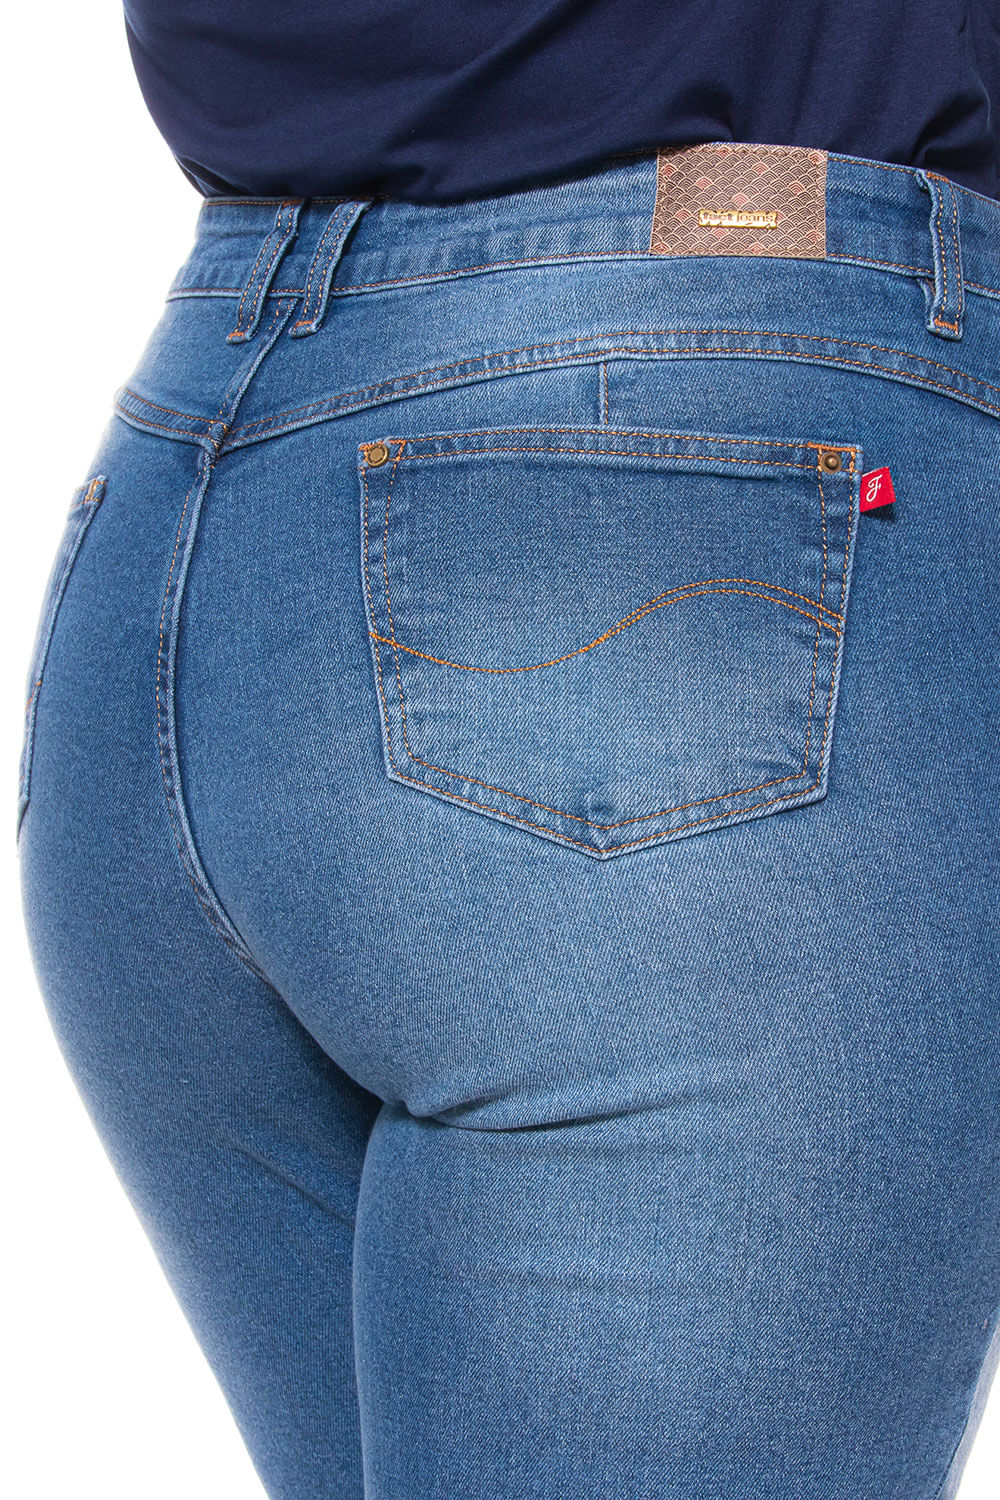 FCT5096_Calca_Cropped_Plus_Size_Jeans_AZUL_4